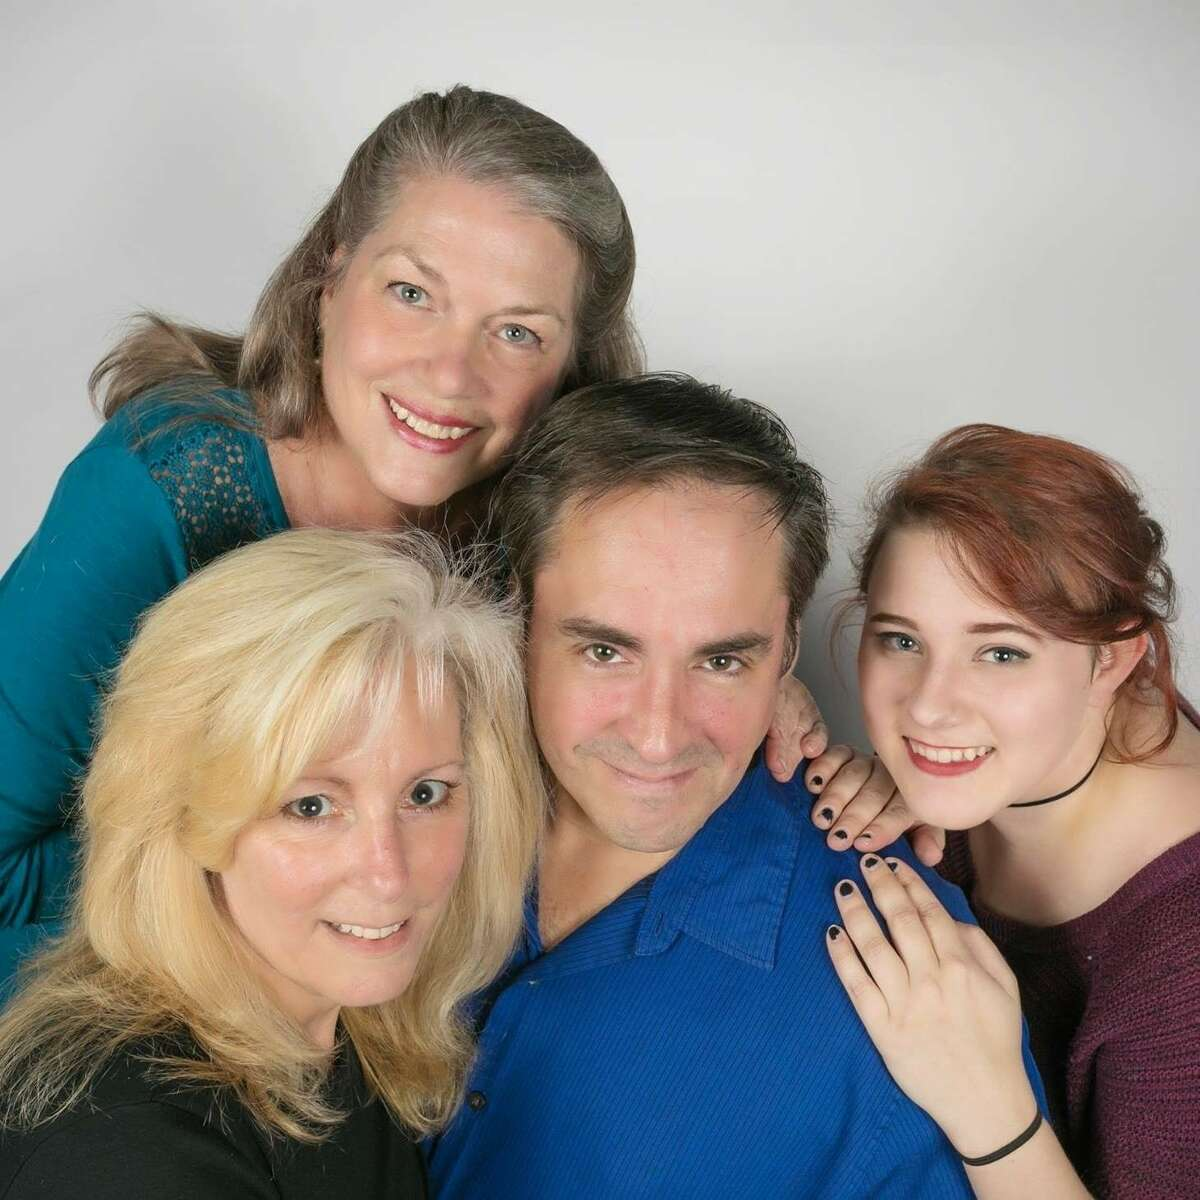 """In Clear Creek Community Theatre's production of Neil Simonscomedy """"Last of the Red Hot Lovers,"""" a timid married man, played by Jeff Merriman of Pearland, is tempted to stray by three very different women, played by Jean Ciampi of League City, left, Caroline McDonald of San Leon and Sara Denton of Sugar Land."""